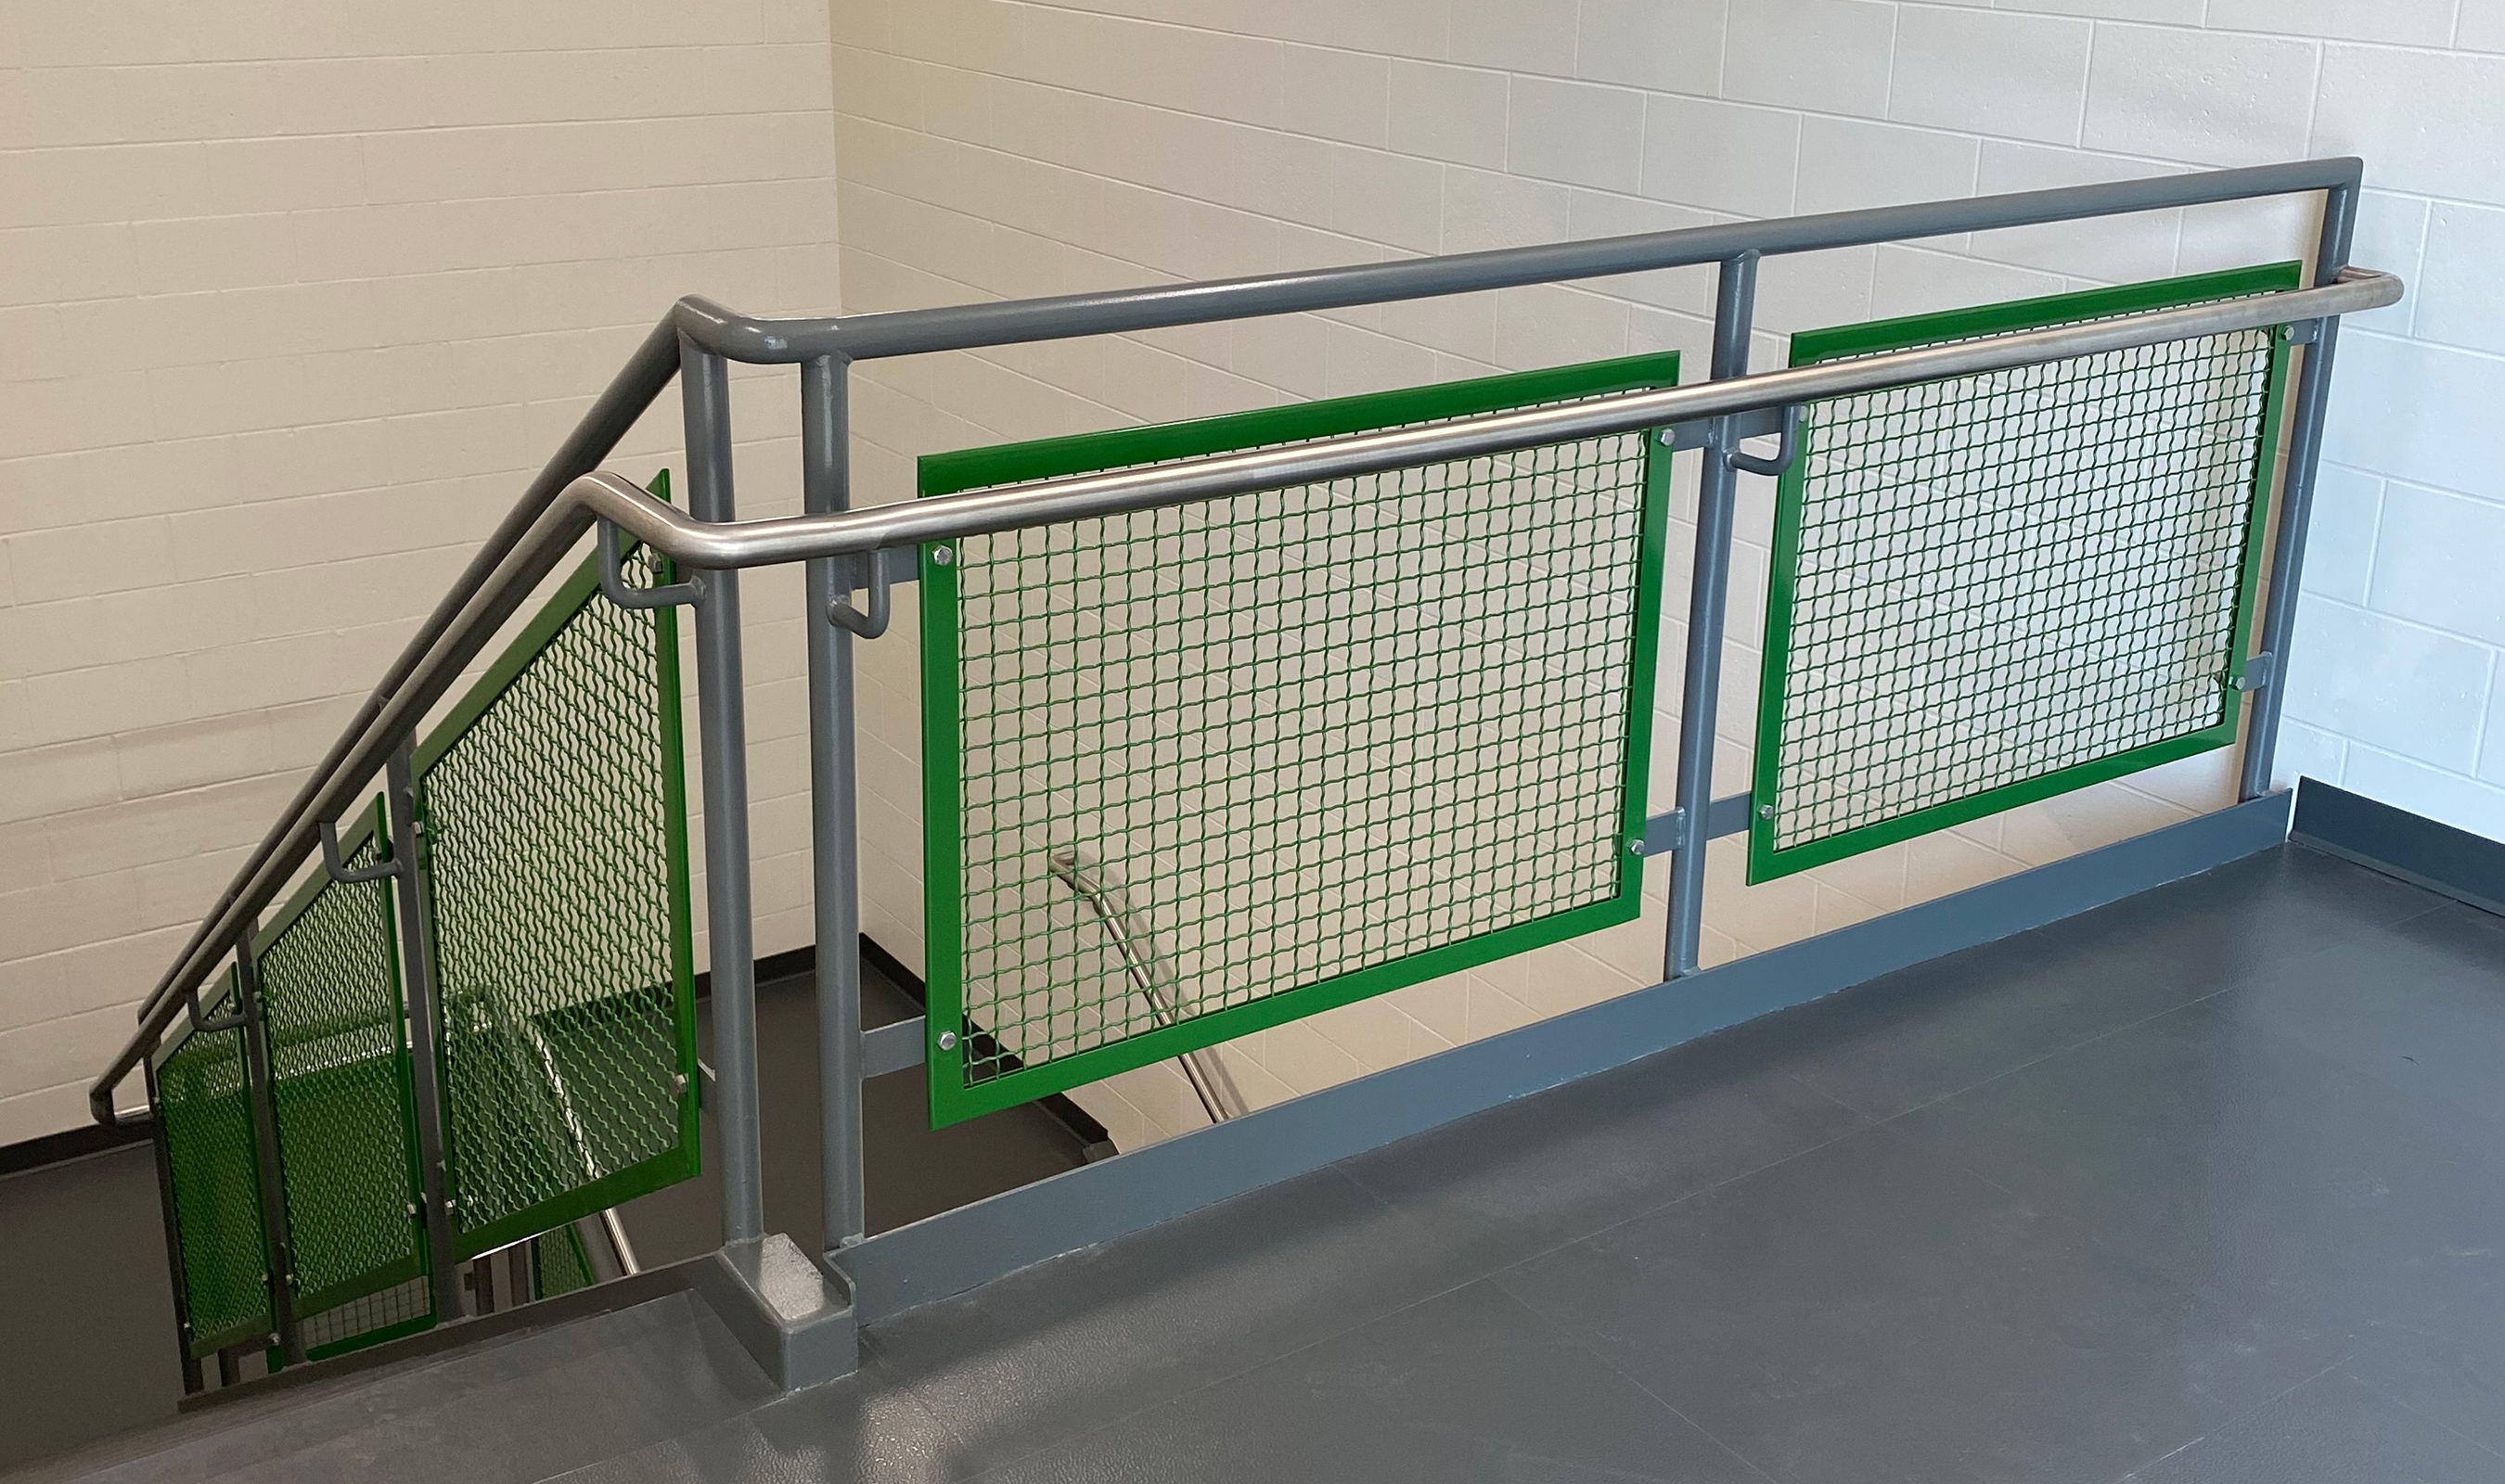 The green painted I-188 railing infill denotes the third floor of the facility.